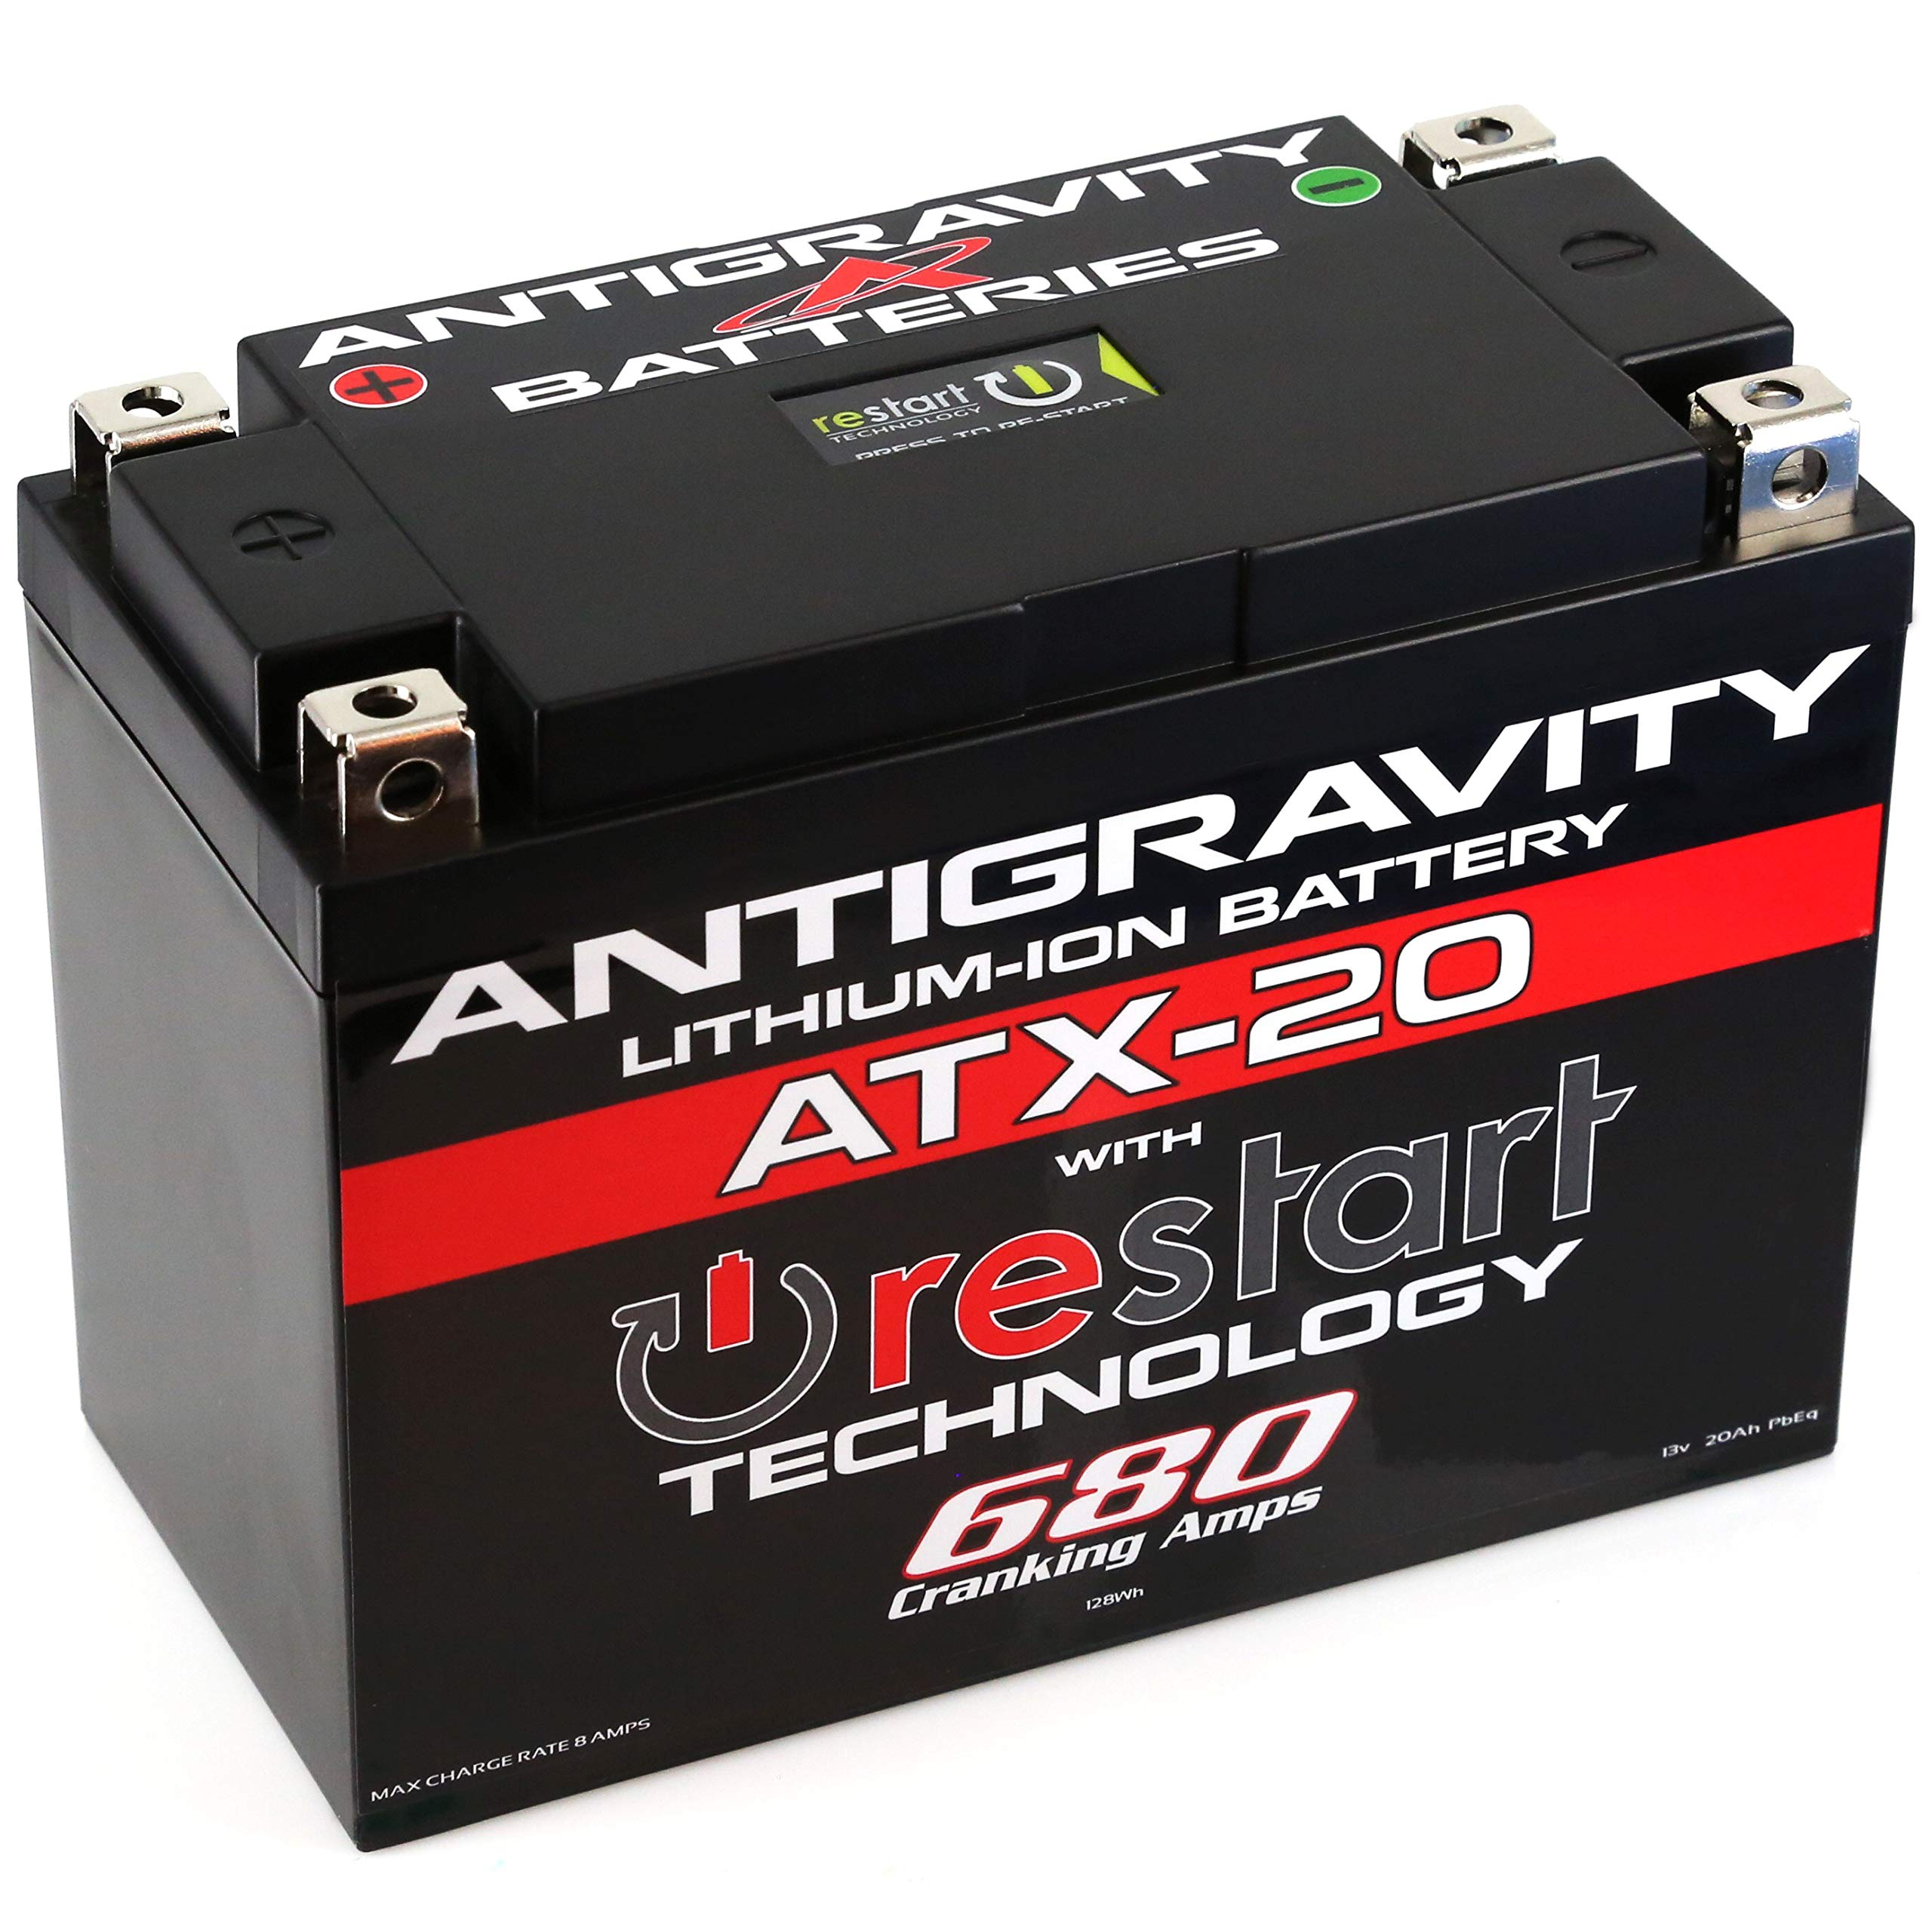 Antigravity ATX20-RS Lithium Motorsport Battery w/BMS & Re-Start Technology - 680cca 3.8 Pounds 20Ah - Replaces YTX15 YTX15L YTX20 YTX20L YTX20H YTX20HL YTX20-BS GYZ20H GYZ20L GYZ20HL - MADE IN USA 3